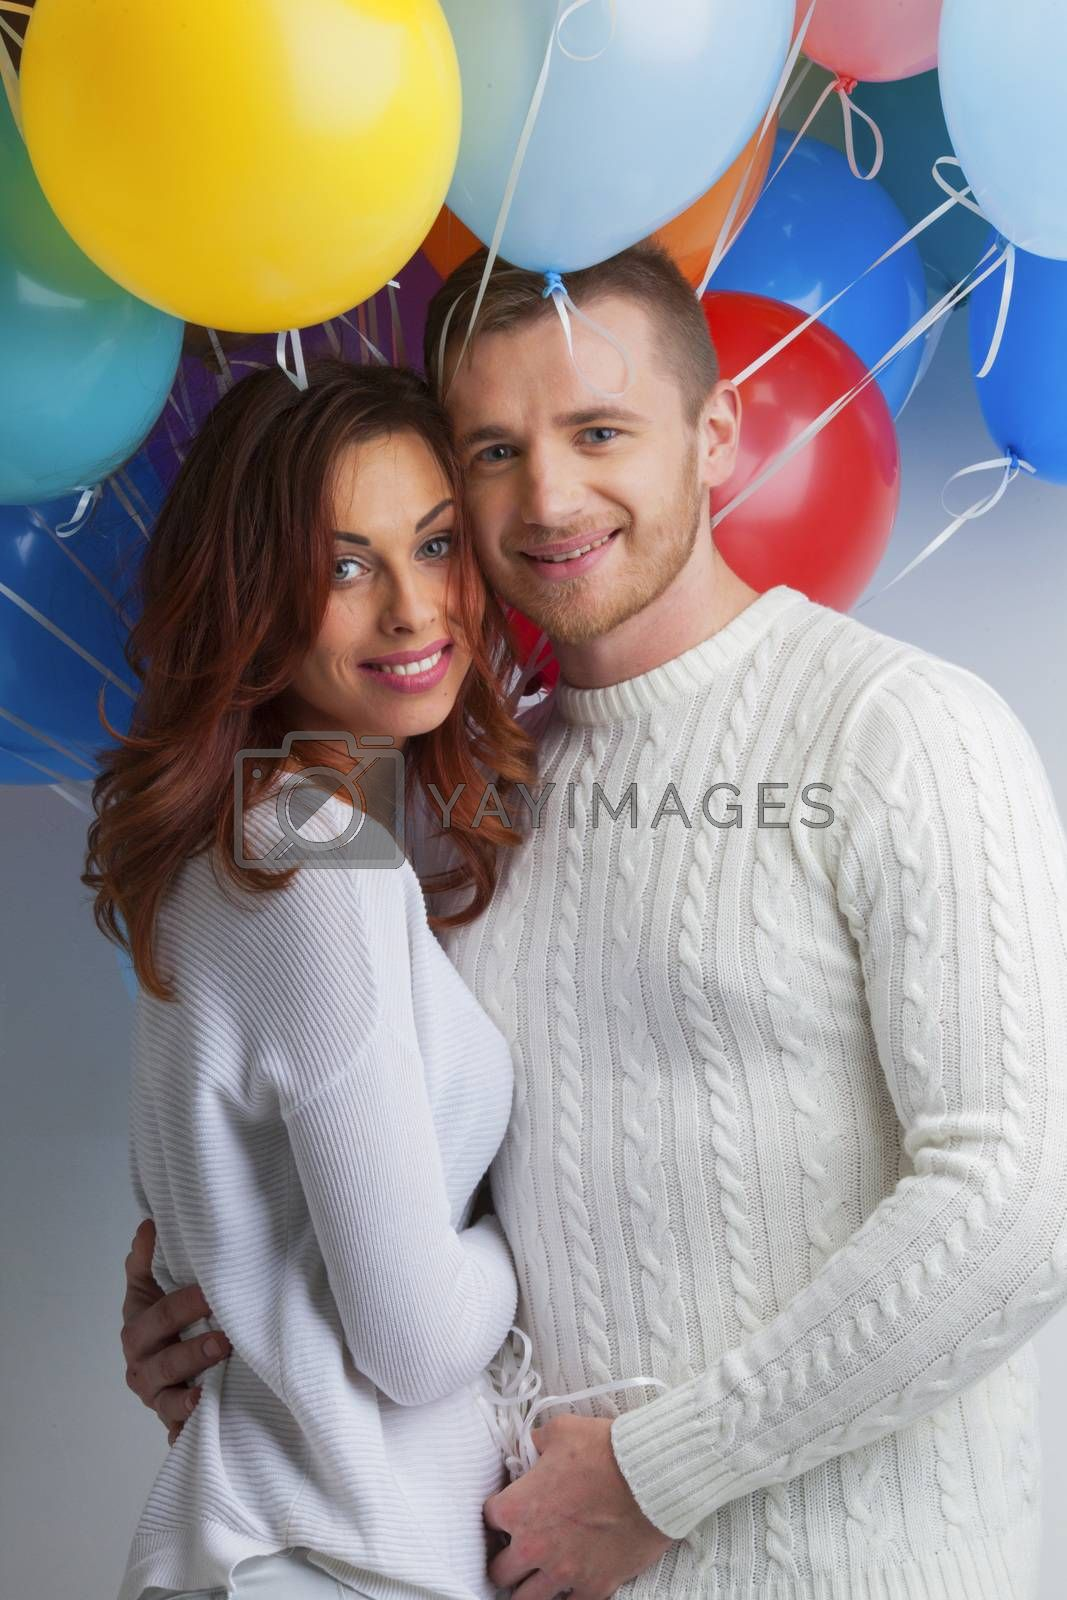 Young smiling hugging couple with balloons